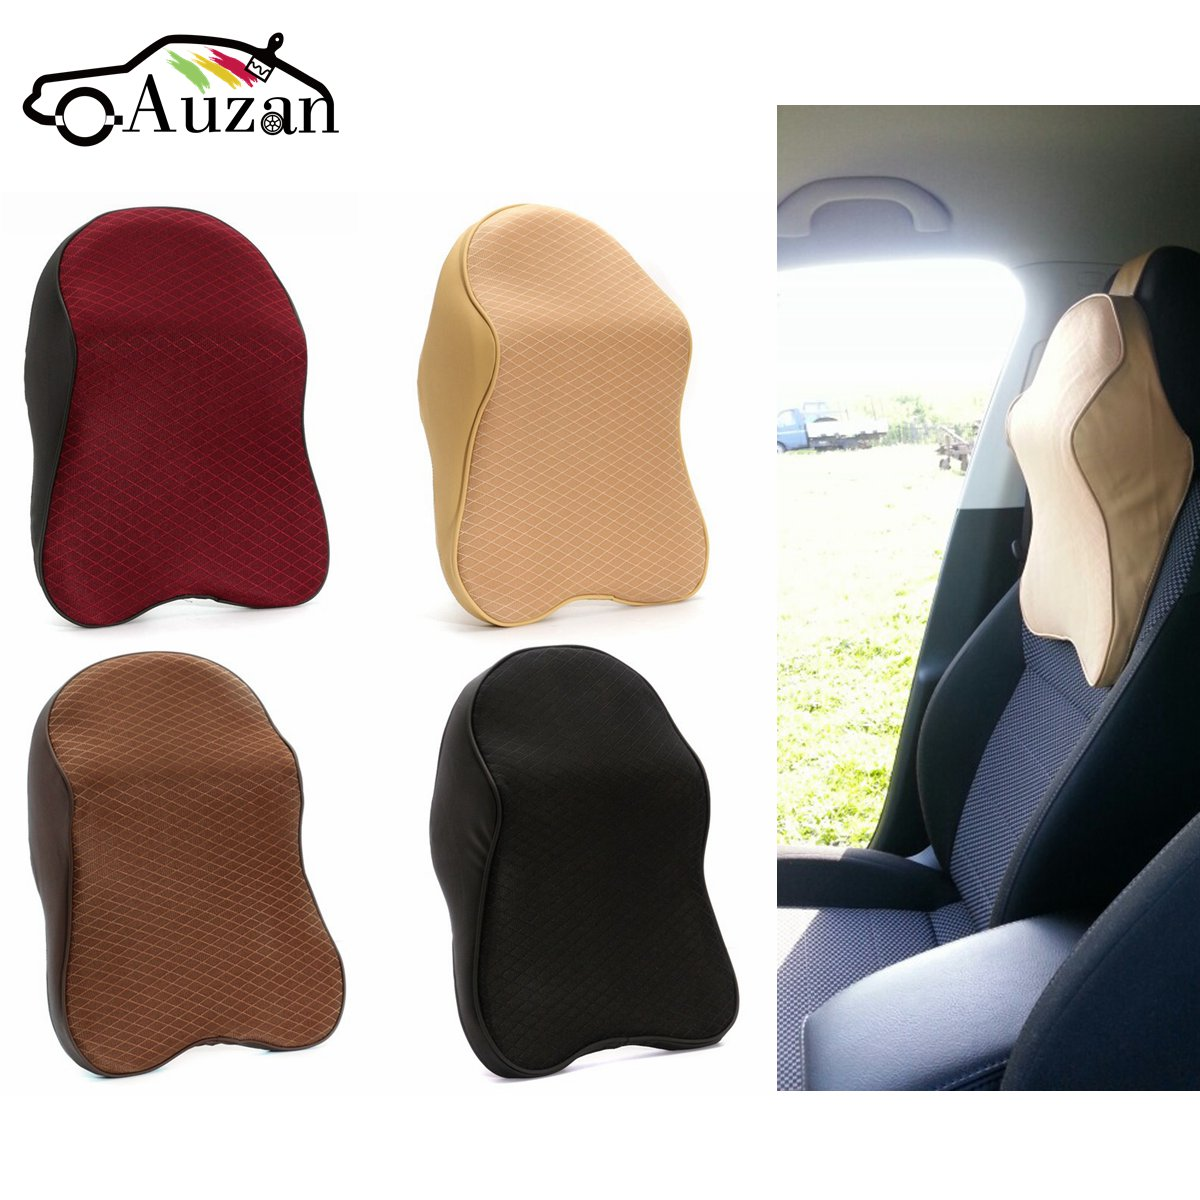 Car Seat Headrest Pad Memory Foam Neck Pillow Head Neck Rest Support Cushion Travel For Renault/VW/FORD/AUDI/BWM/Mazda Universal